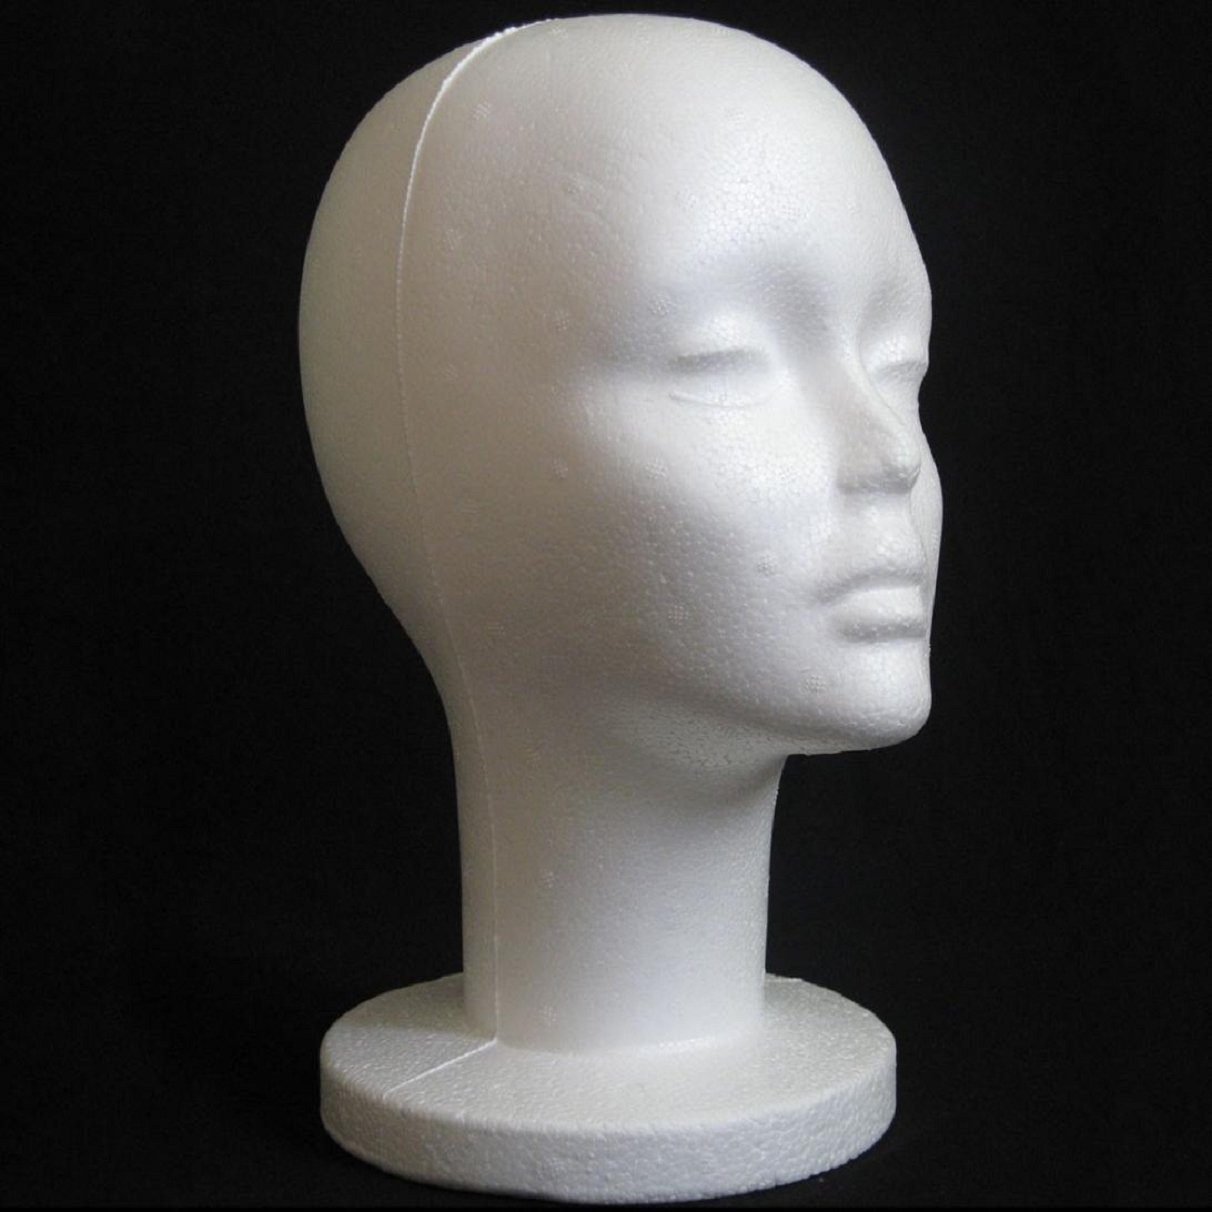 Amazon.com: Lookatool Female Styrofoam Mannequin Manikin Head Model Foam Wig Hair Glasses Display: Beauty